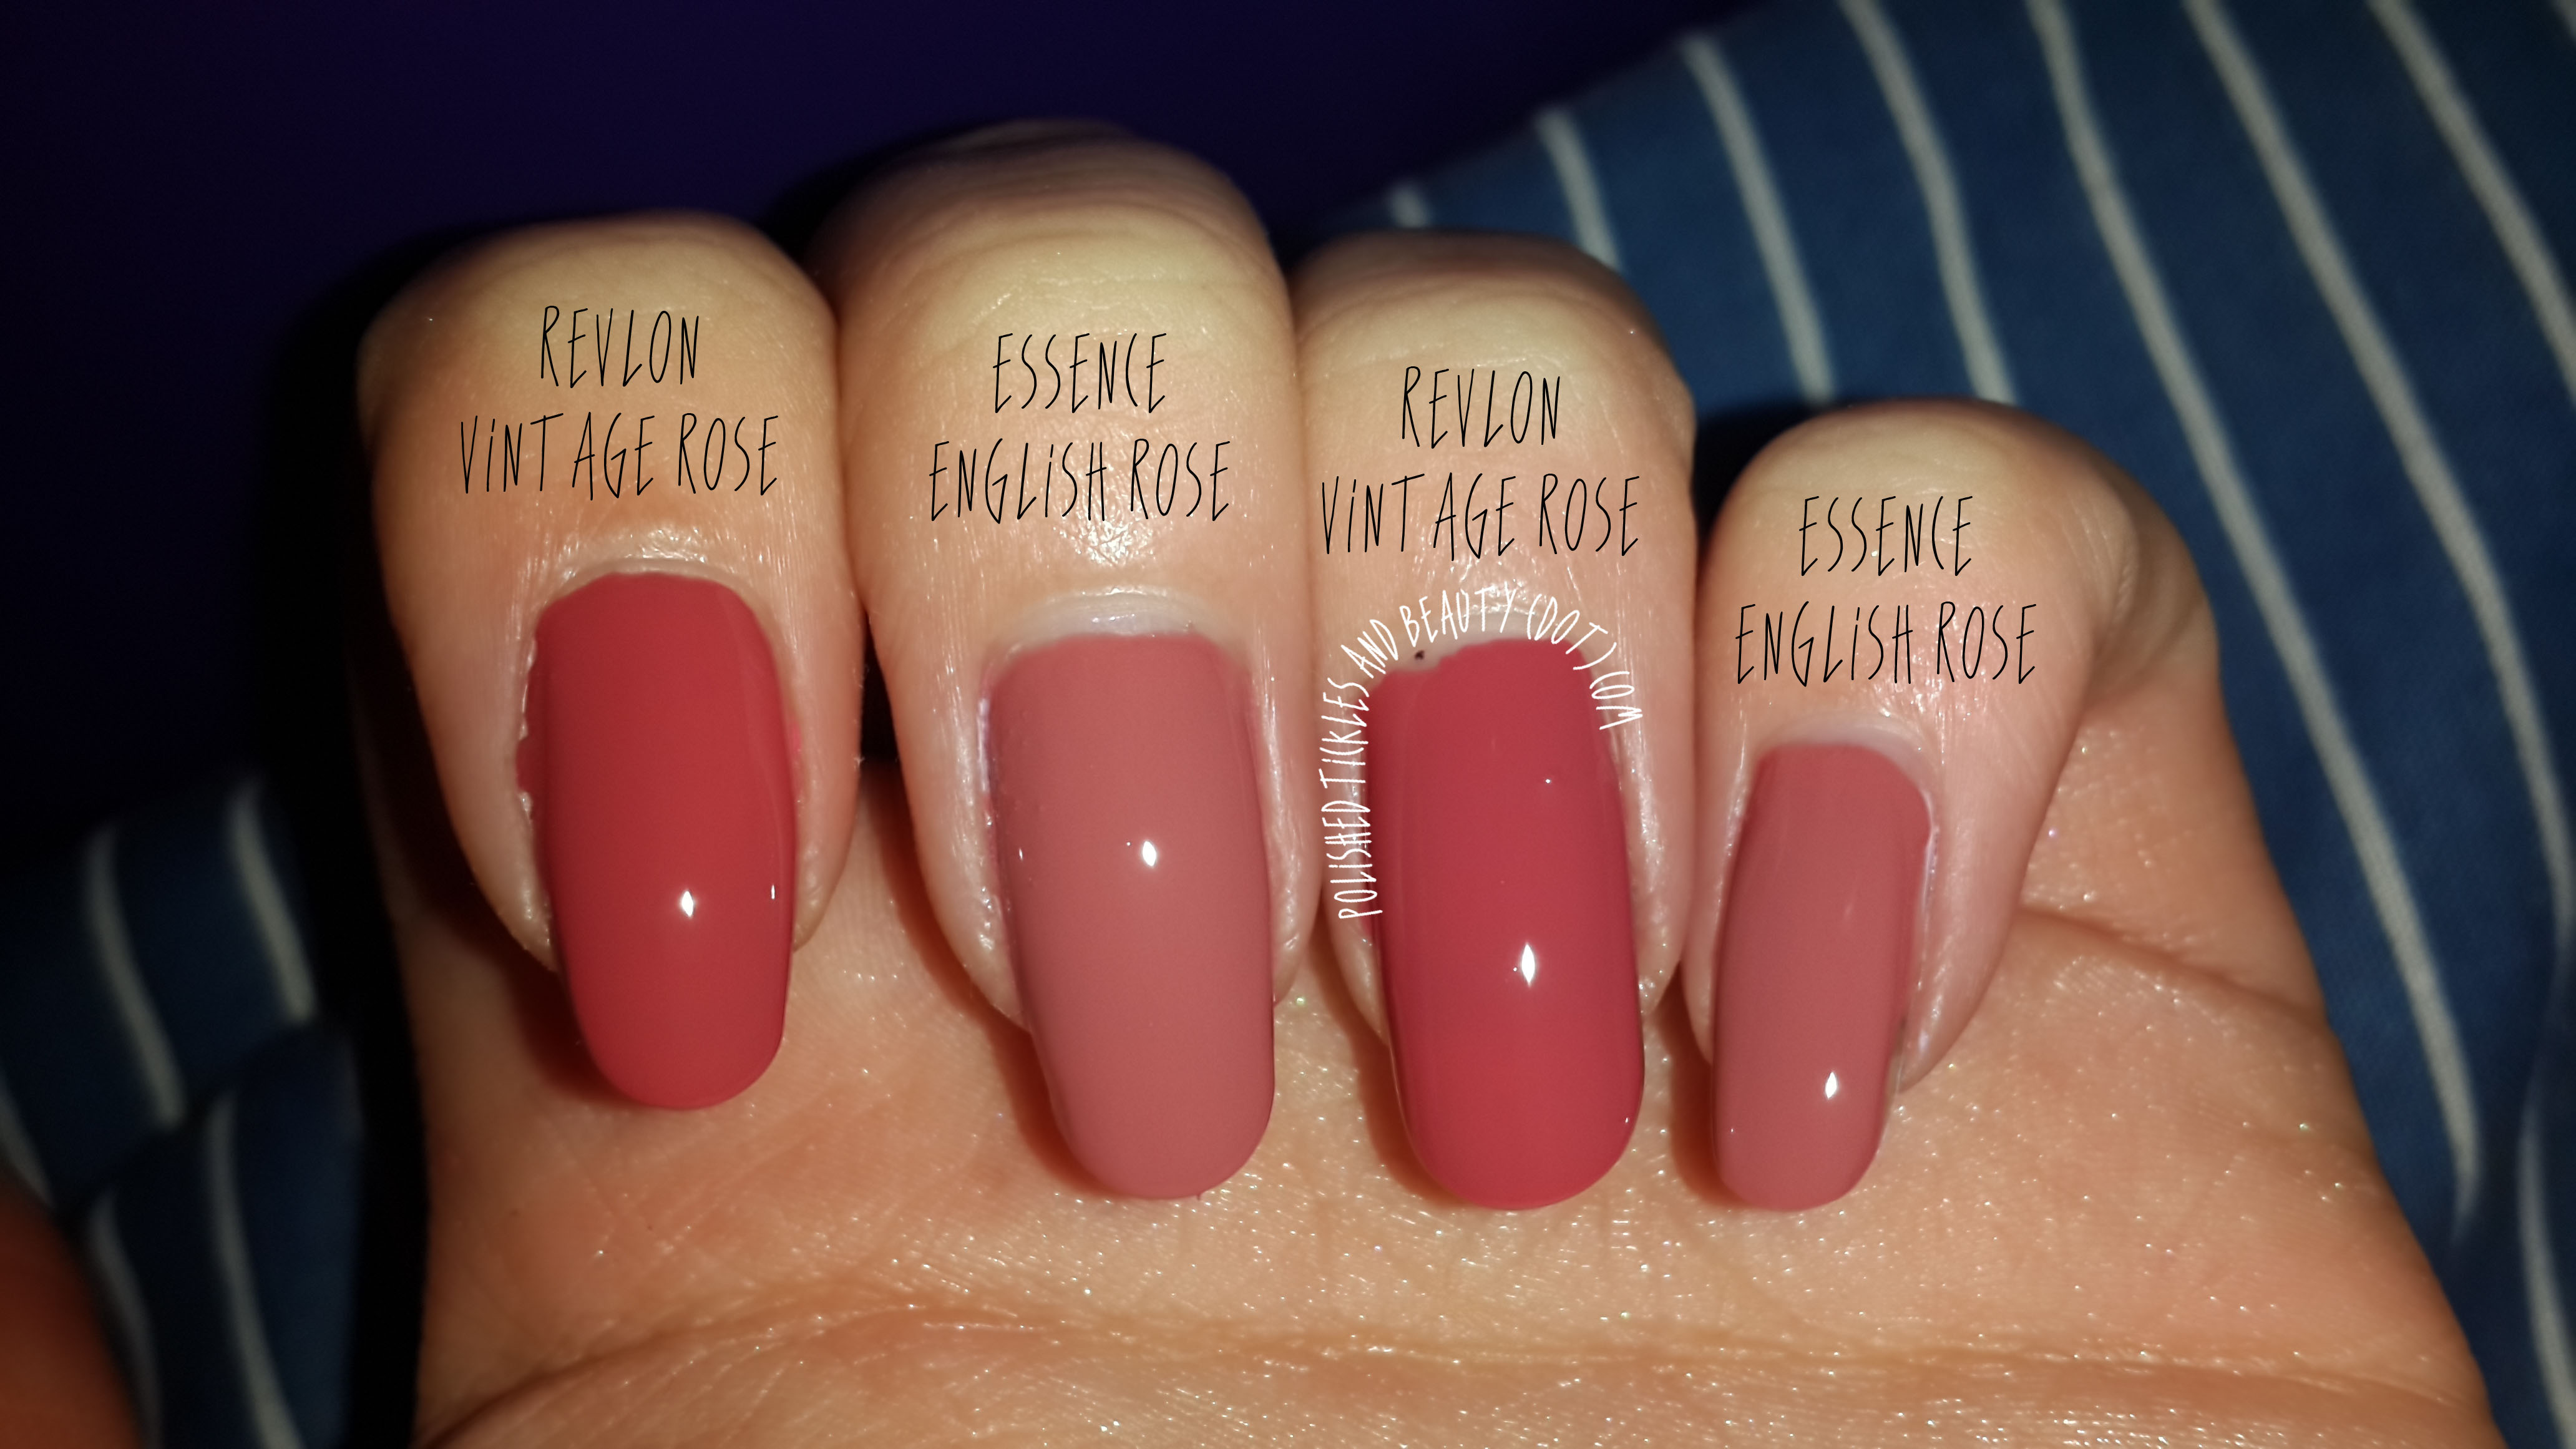 Revlon Polished Tickles And Beauty